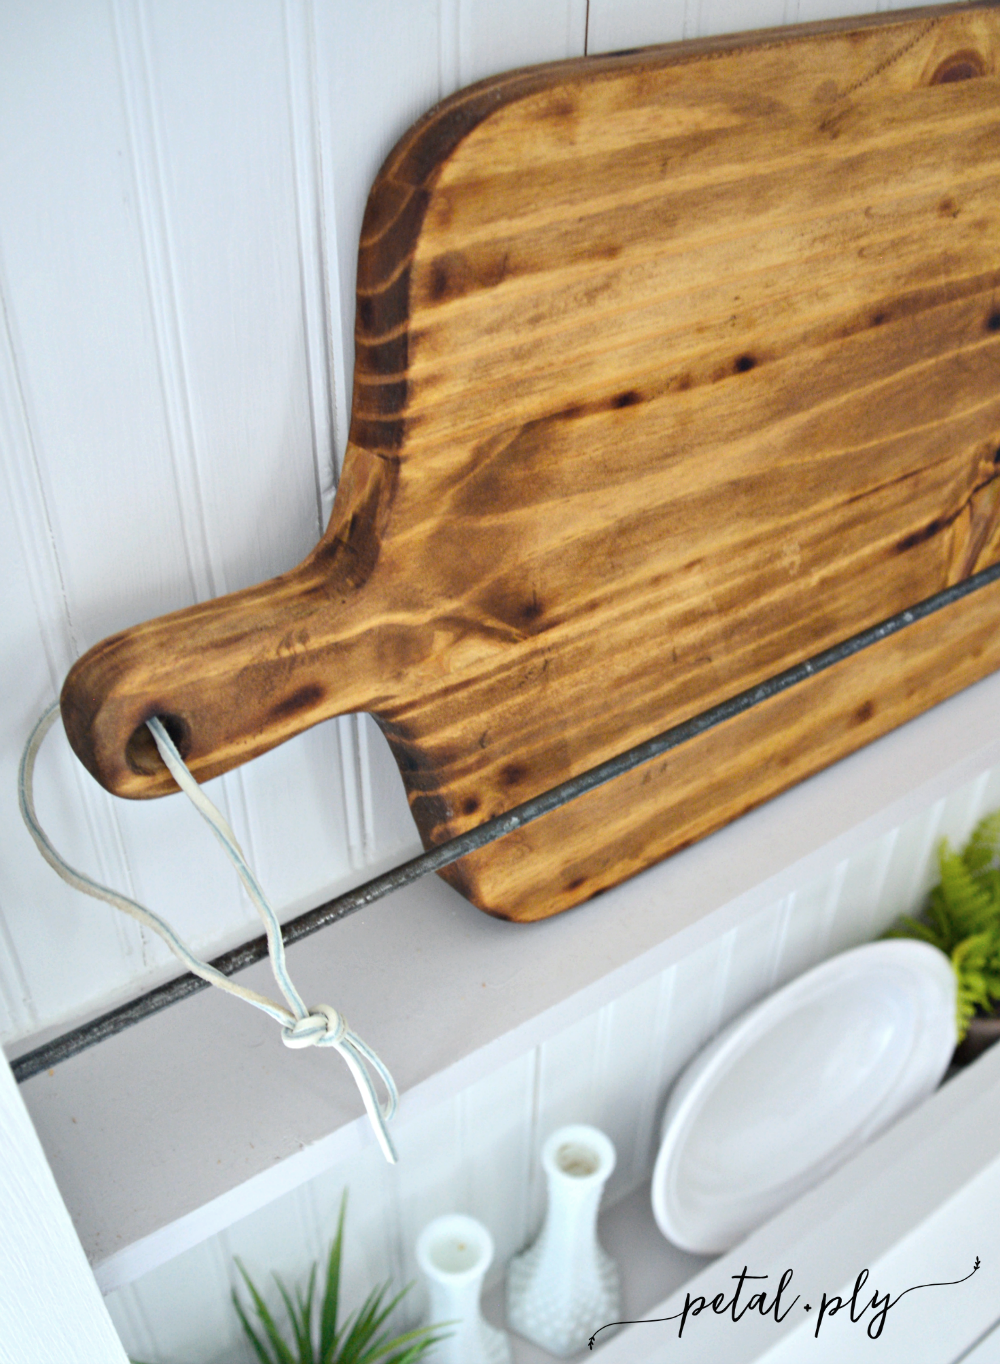 wm-natural-wood-stain-cutting-board